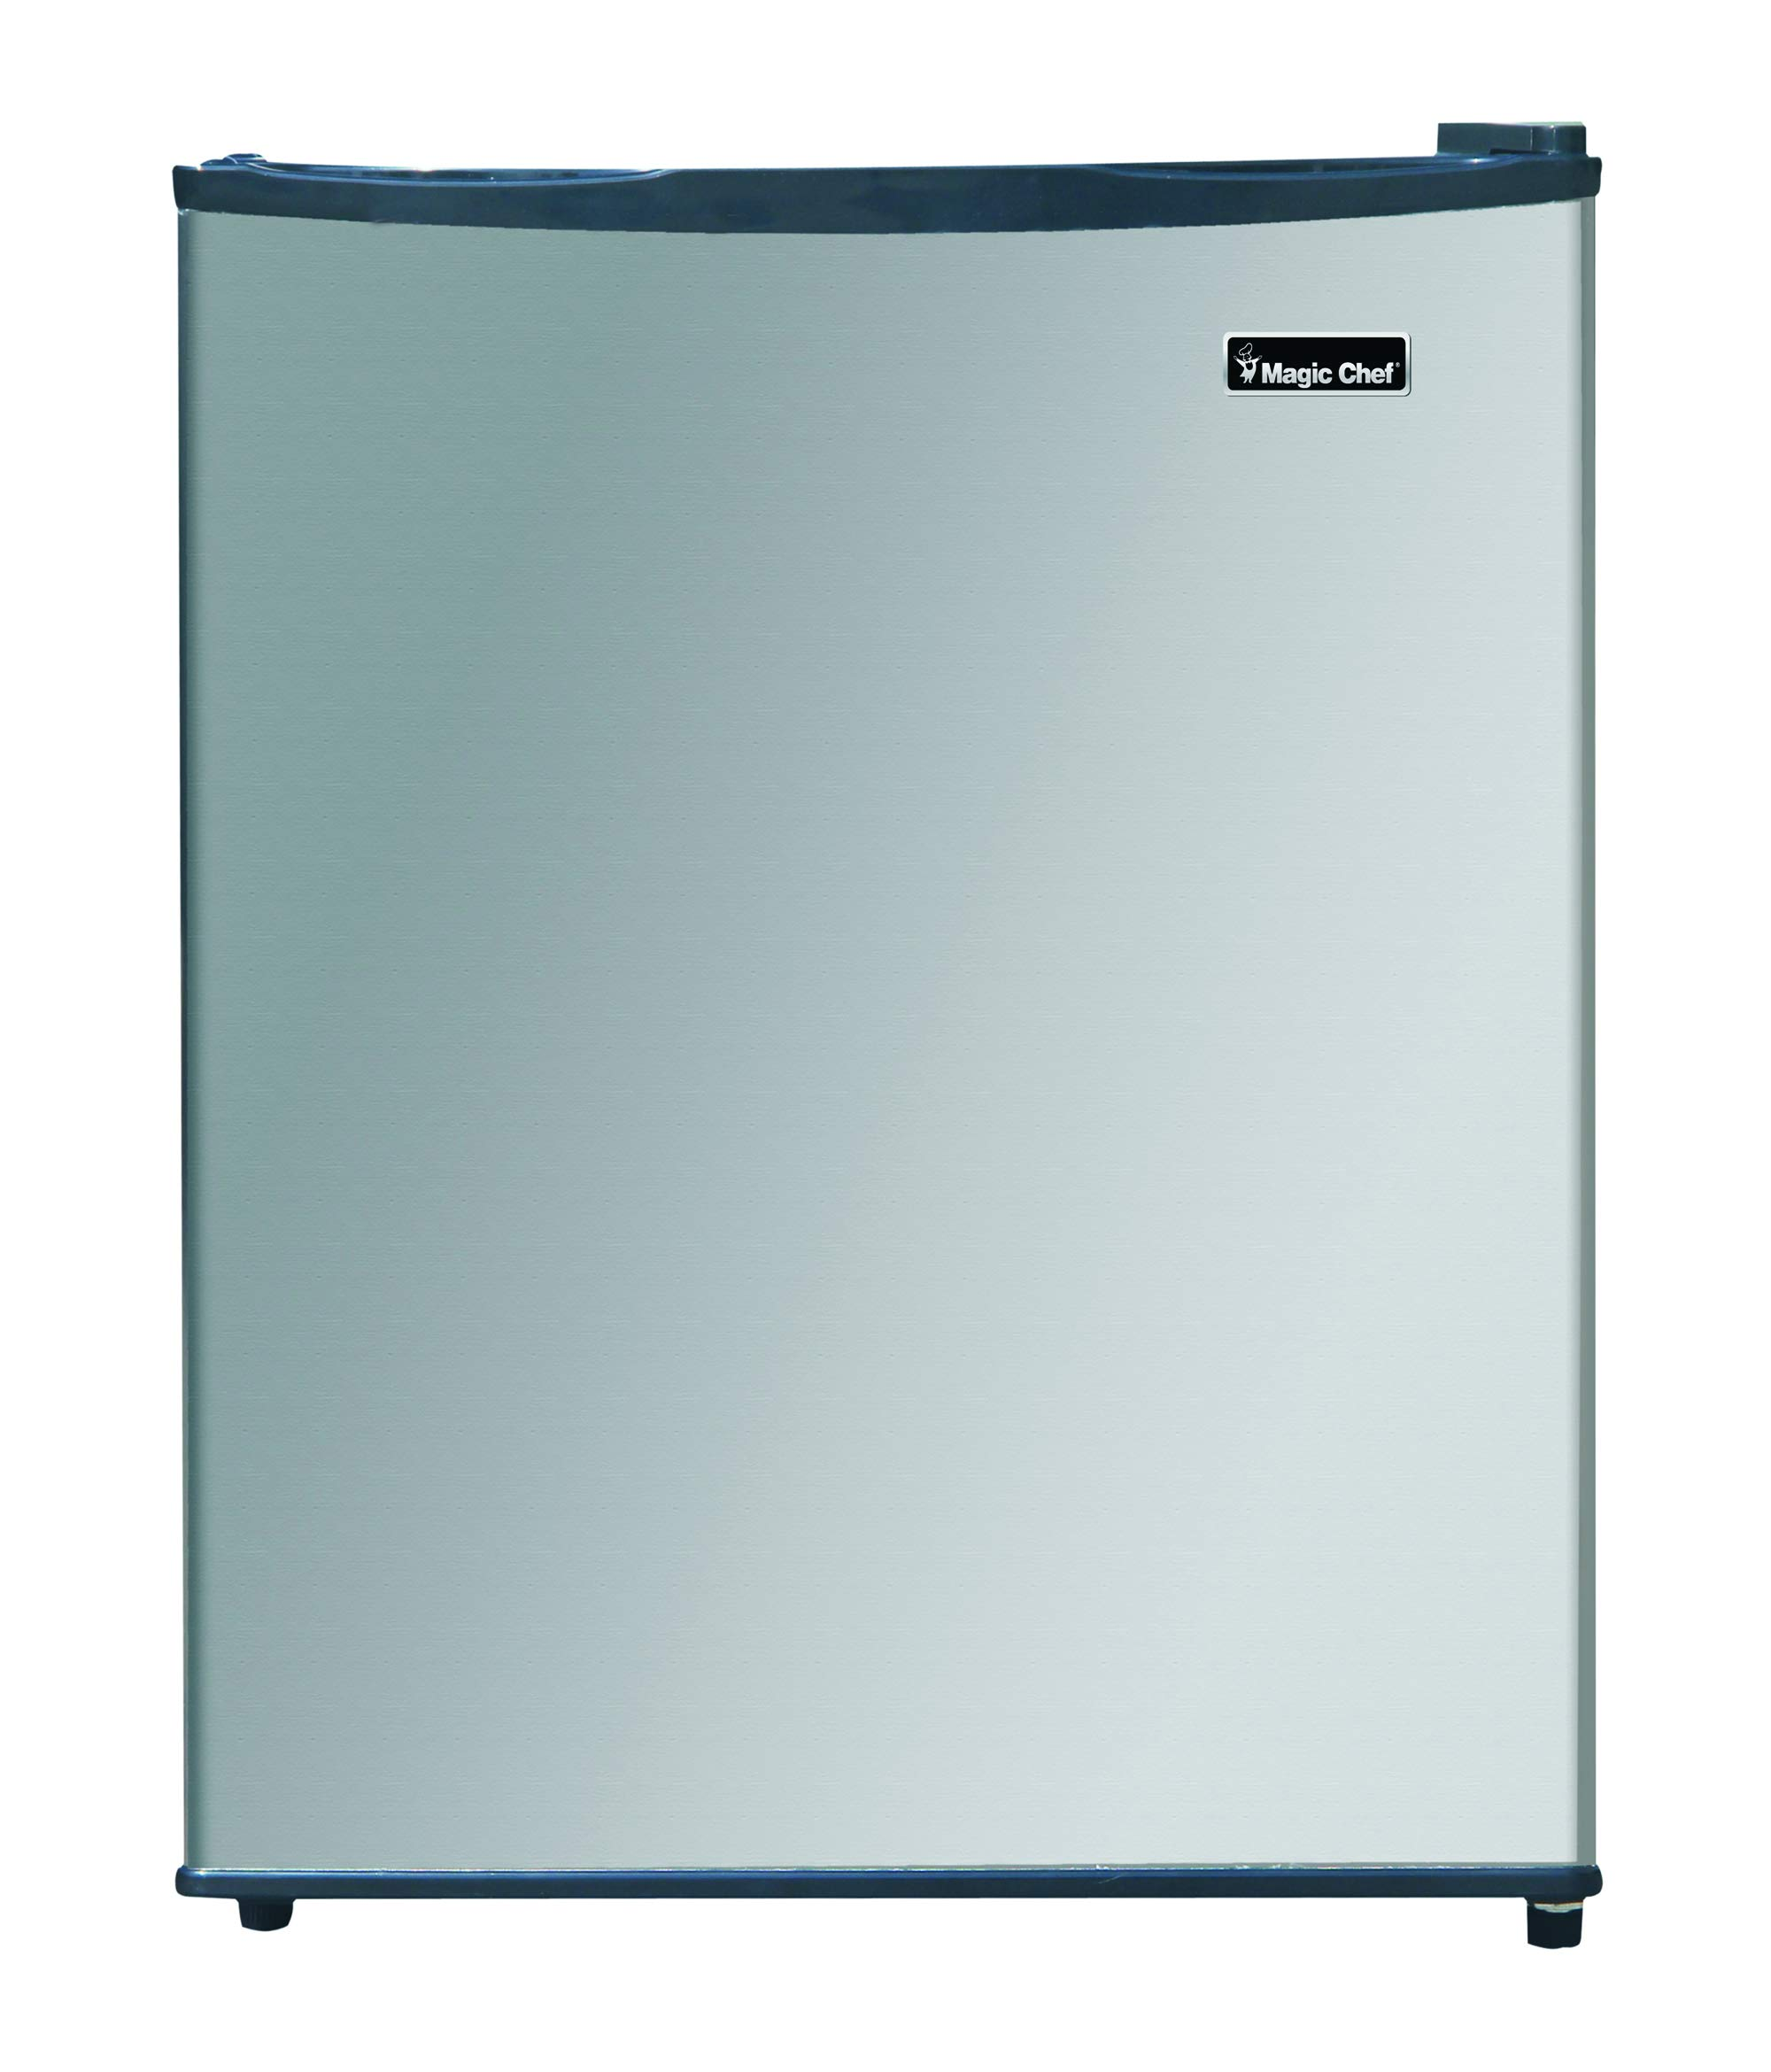 Magic Chef MCAR240SE2 Energy Star Stainless Steel Door 2.4 Cu. Ft. Mini All-Refrigerator by Magic Chef (Image #1)